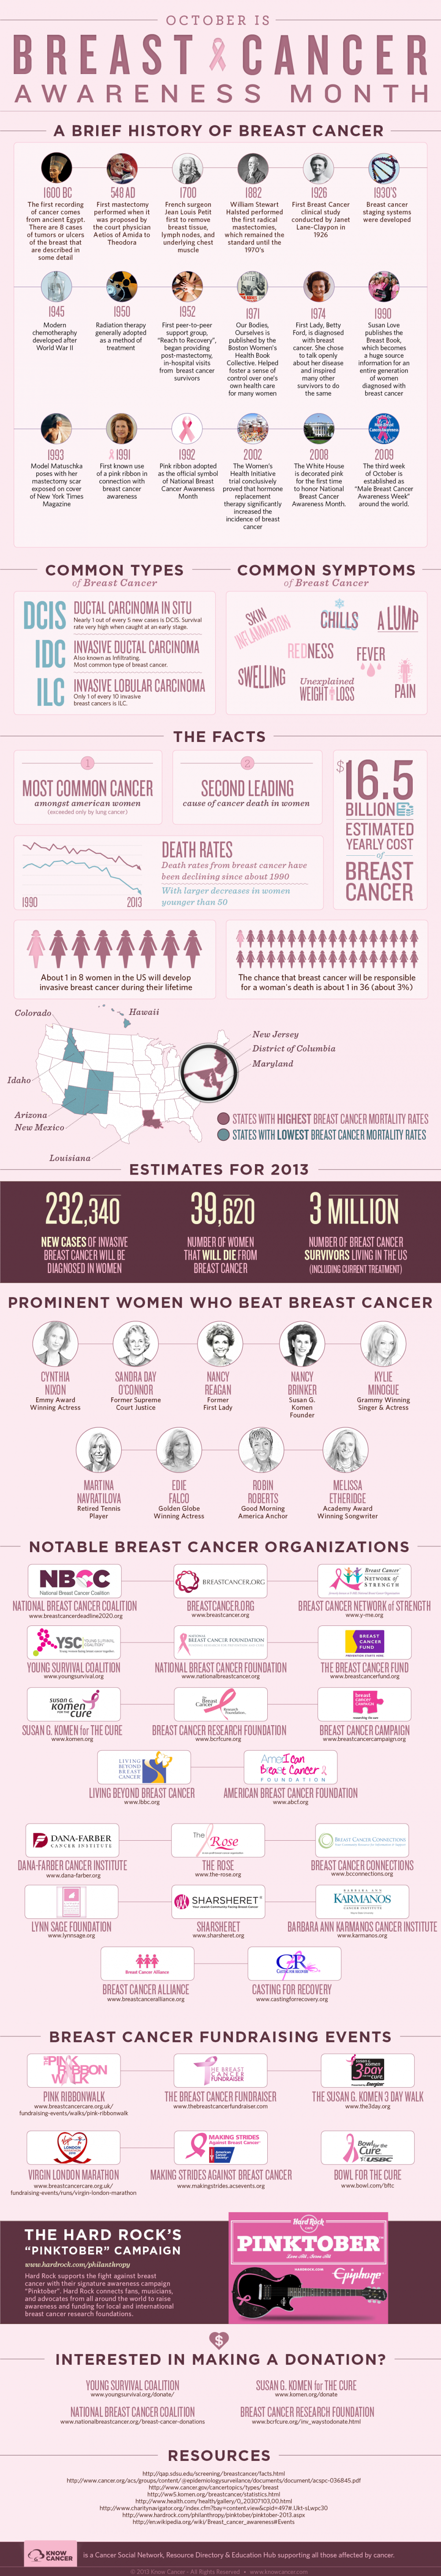 Breast Cancer Awareness 2013 Infographic Cancer Blog